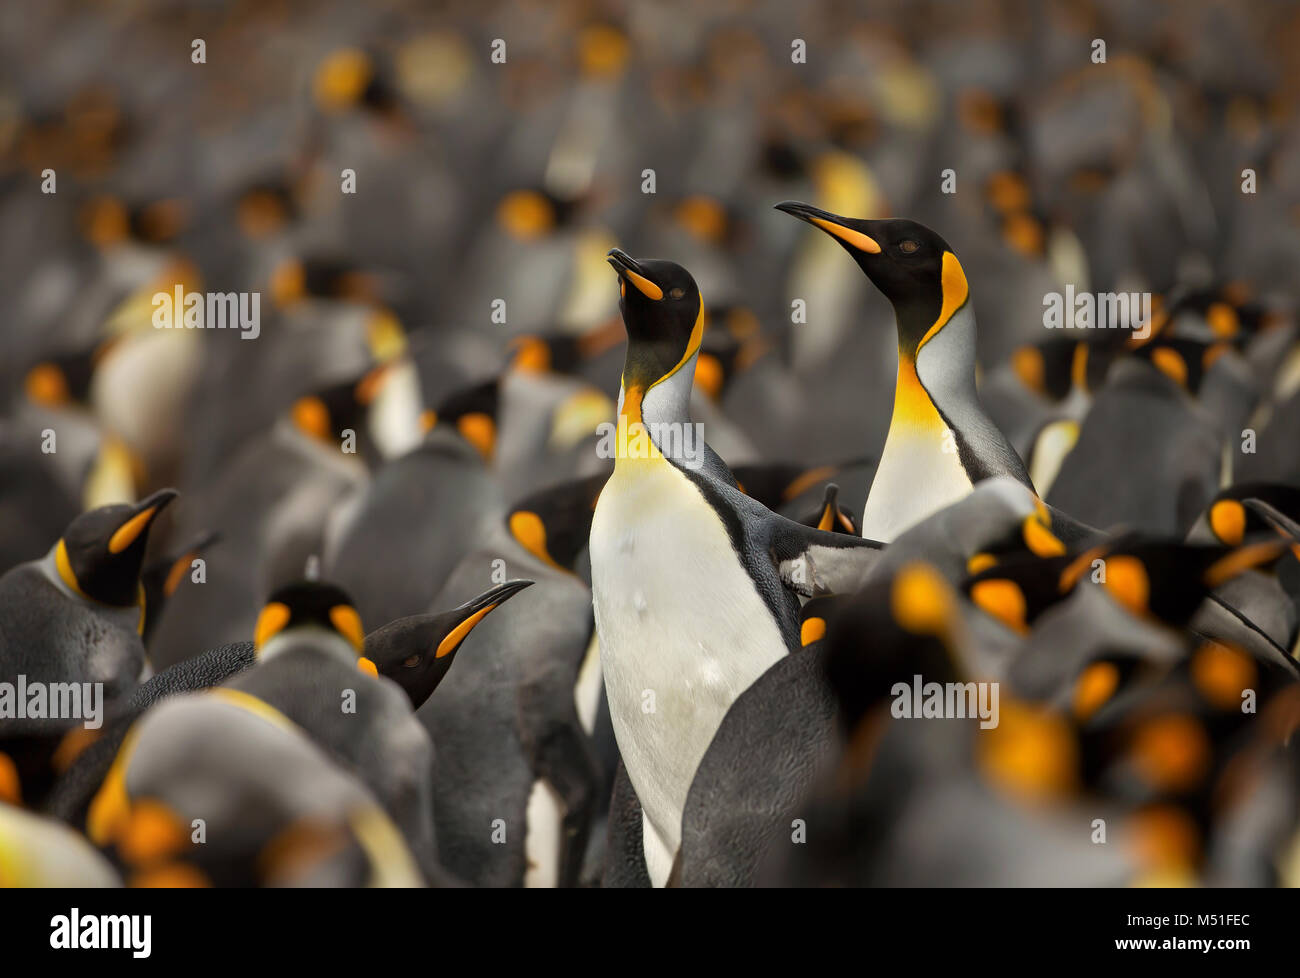 King penguin (Aptenodytes Patagonicus) colony in the Falkland islands. - Stock Image